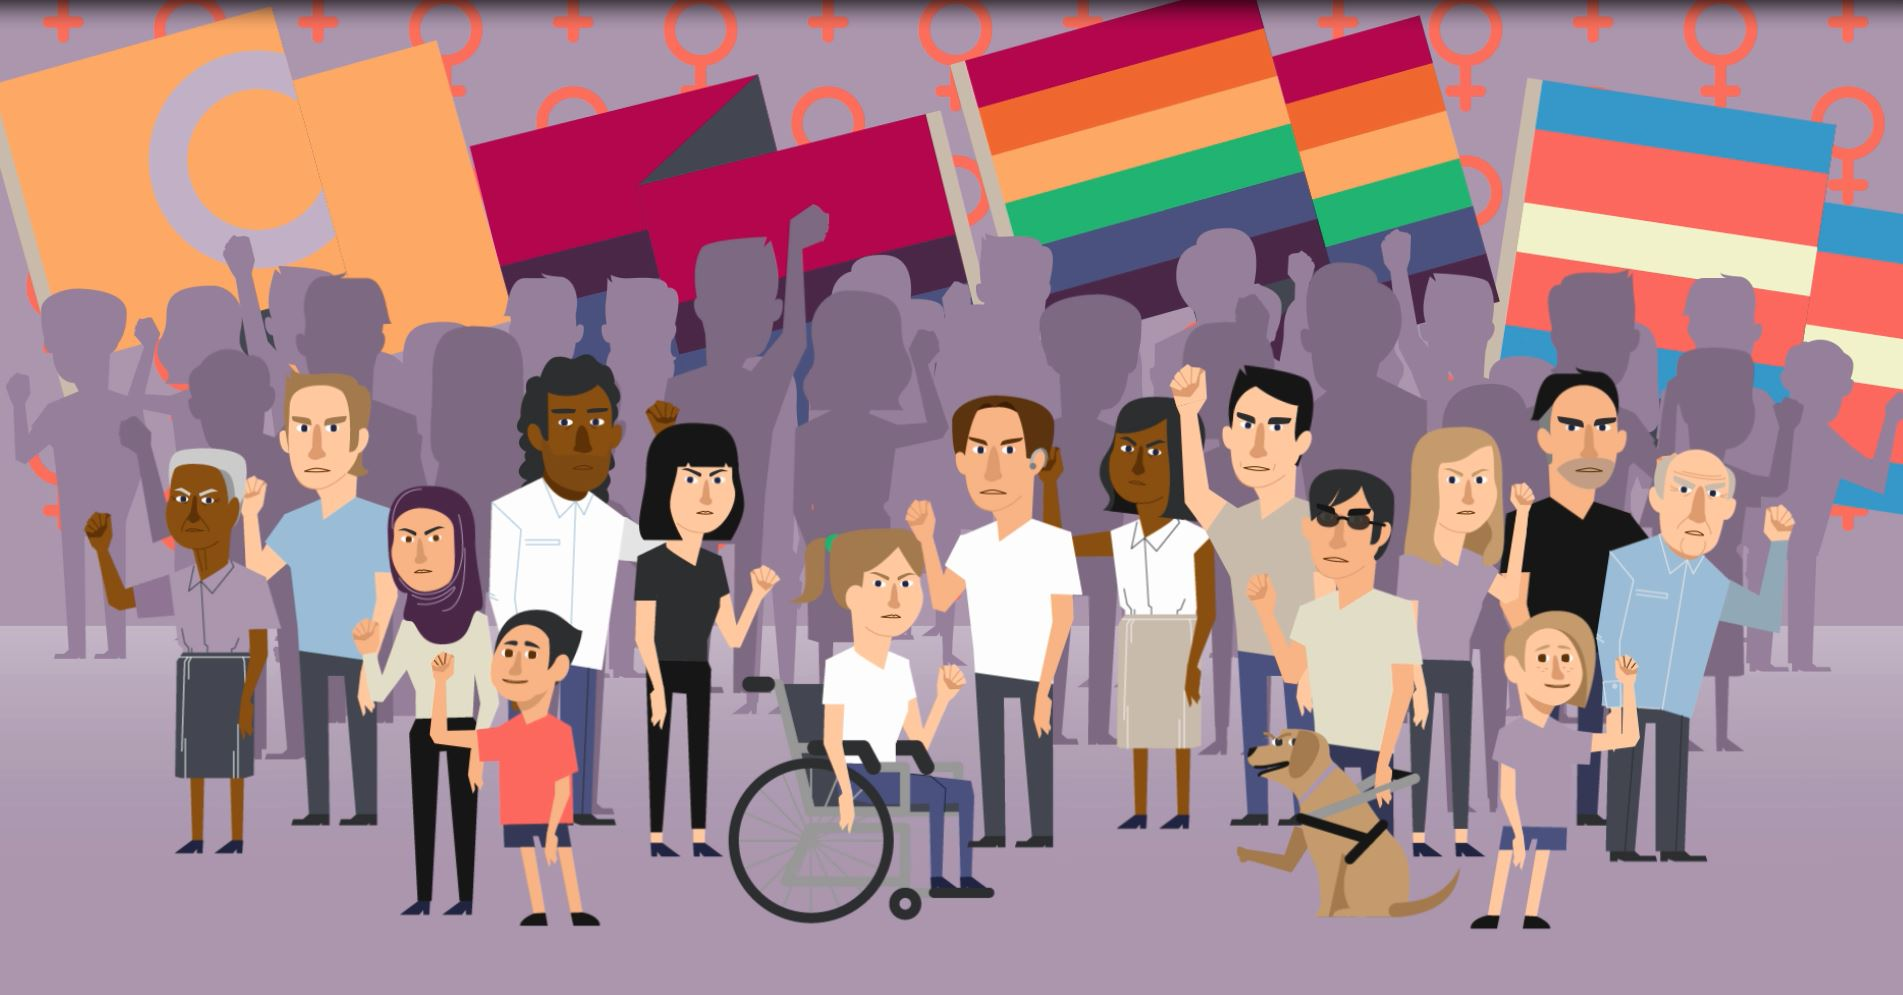 LGBTI protestors cartoon